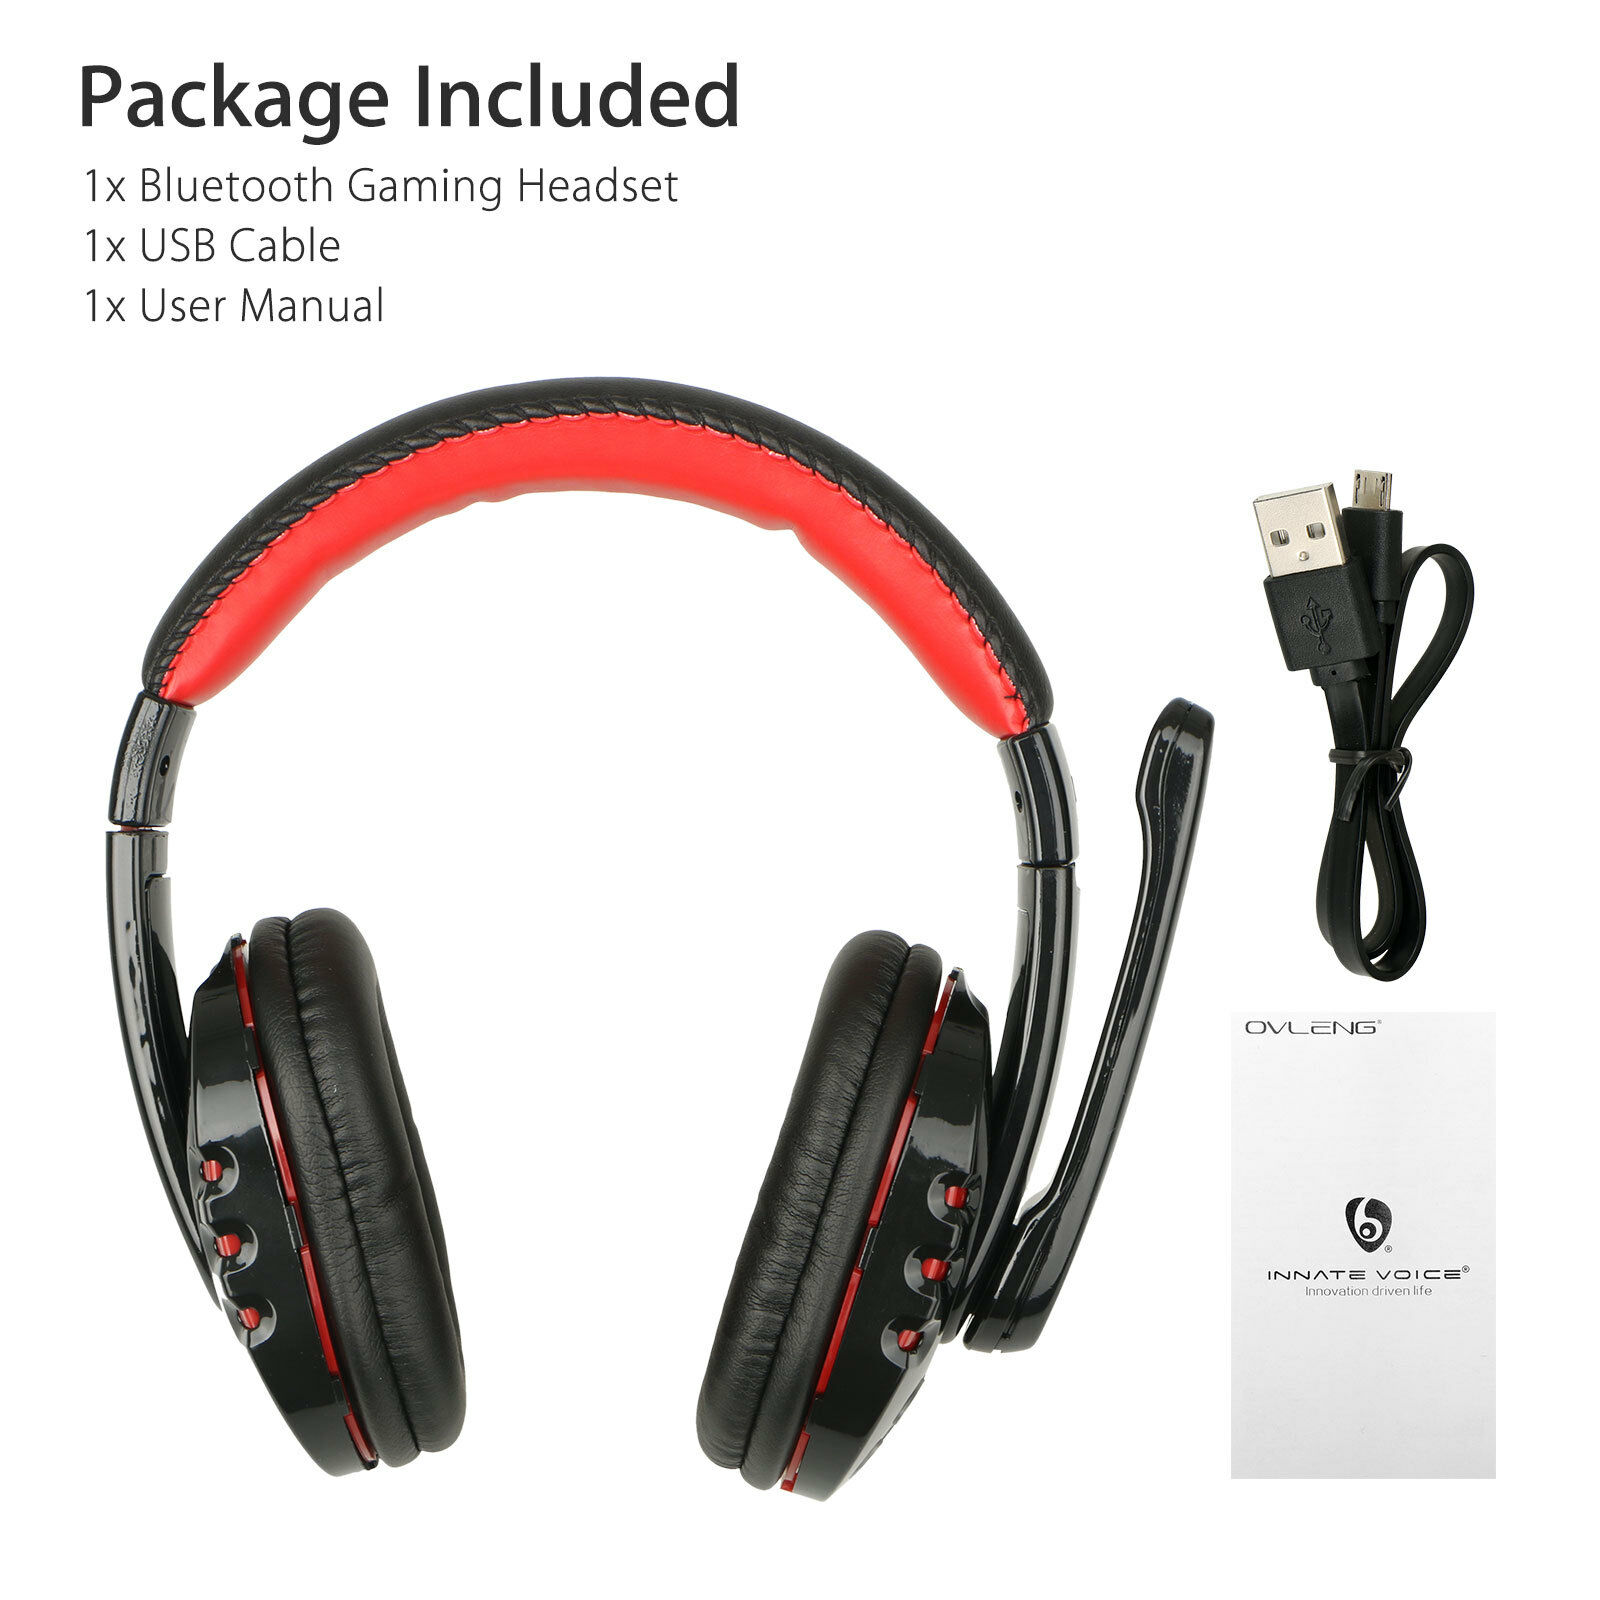 Bluetooth Wireless Gaming Headset for Xbox PC PS4 with Mic LED Volume Control As shown